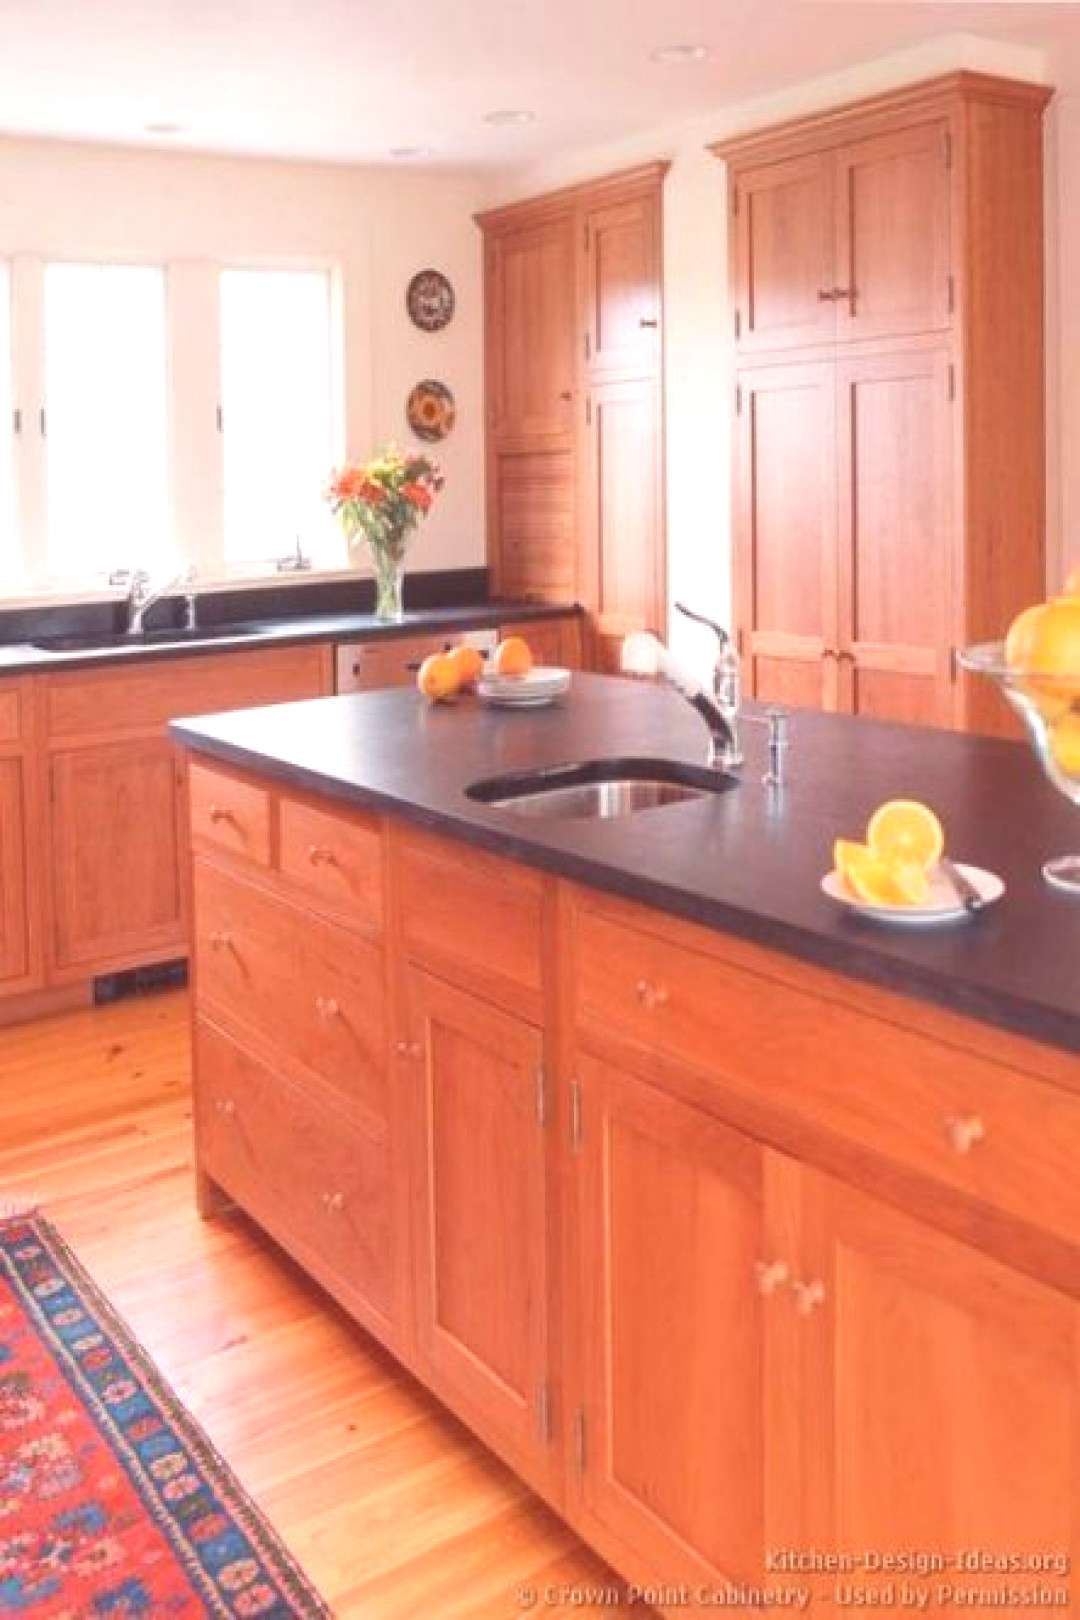 Best kitchen cabinets colors cherry shaker style Ideas#cabinets